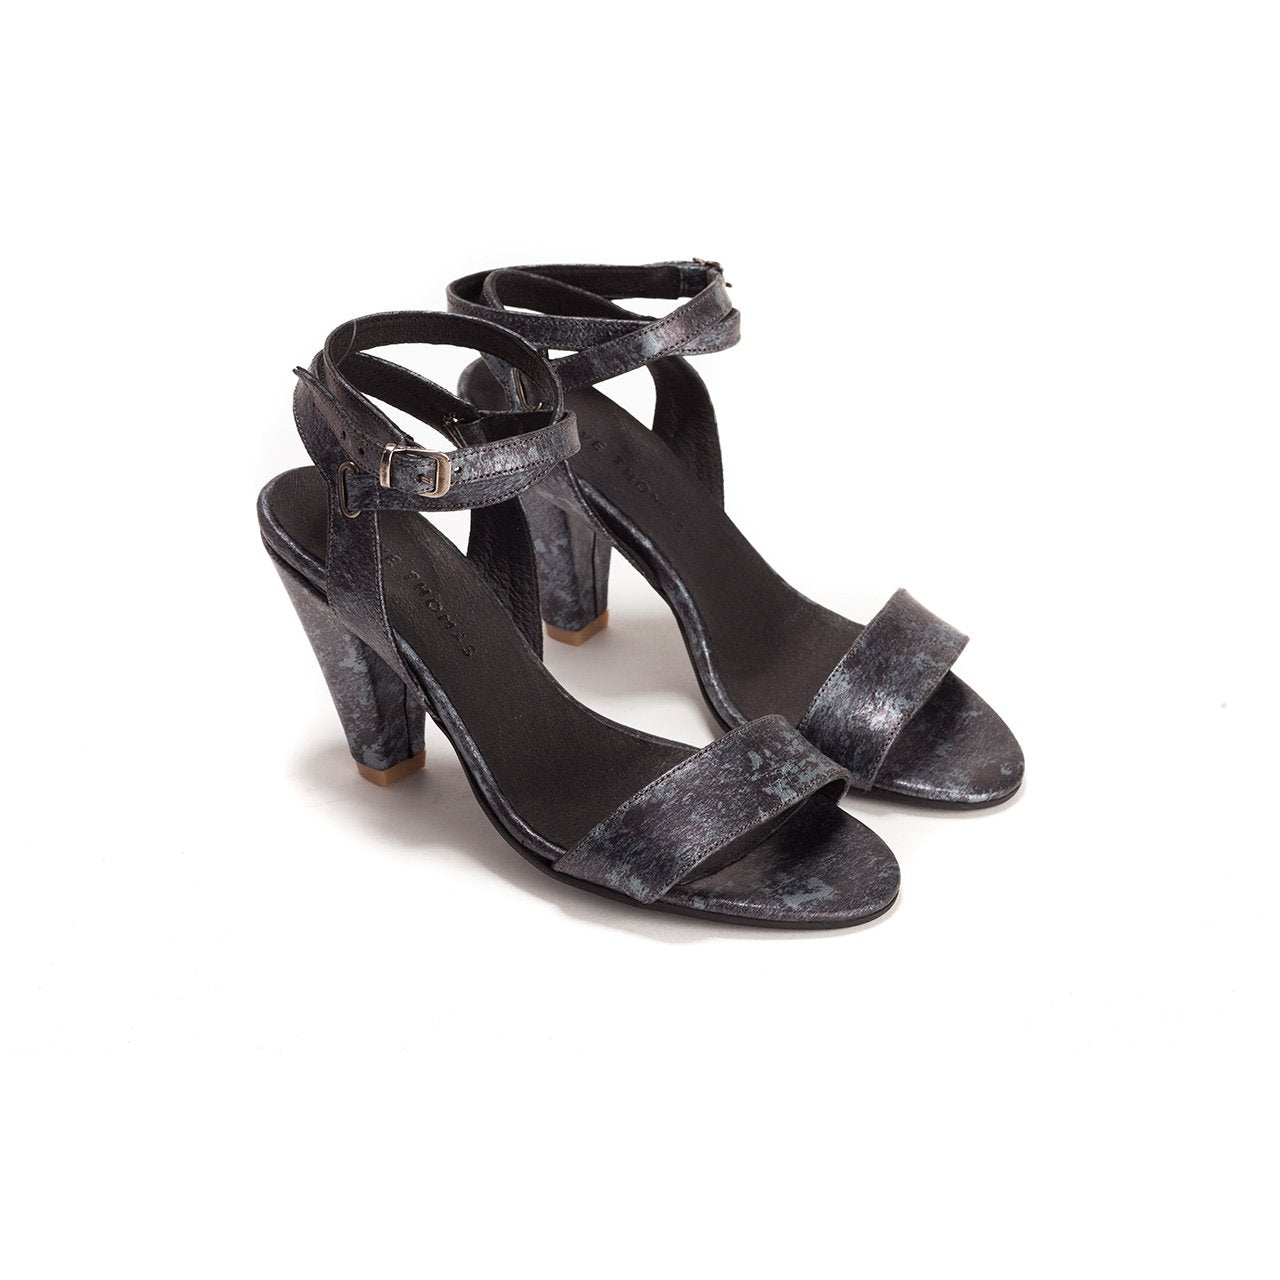 Ellie - High Heel Strappy Sandals